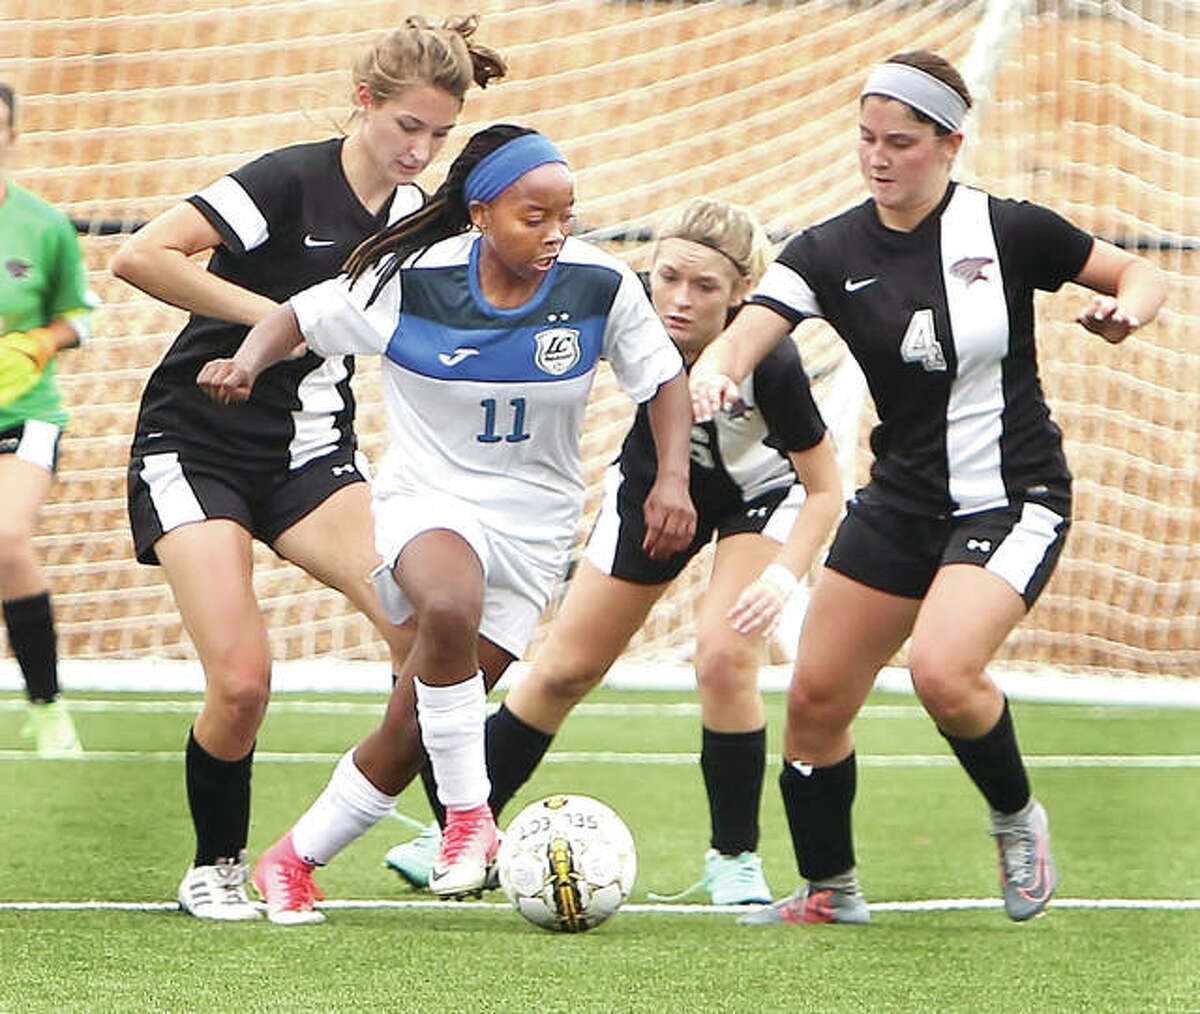 LCCC's Senate Letsie (11) controls the ball against St. Charles Community College Saturday during district playoff action at the Missouri Rush Soccer Complex. Letsie scored the game-winning goal in the Trailblazers' 2-1 victory, which means a berth in the NJCAA National Tournament.